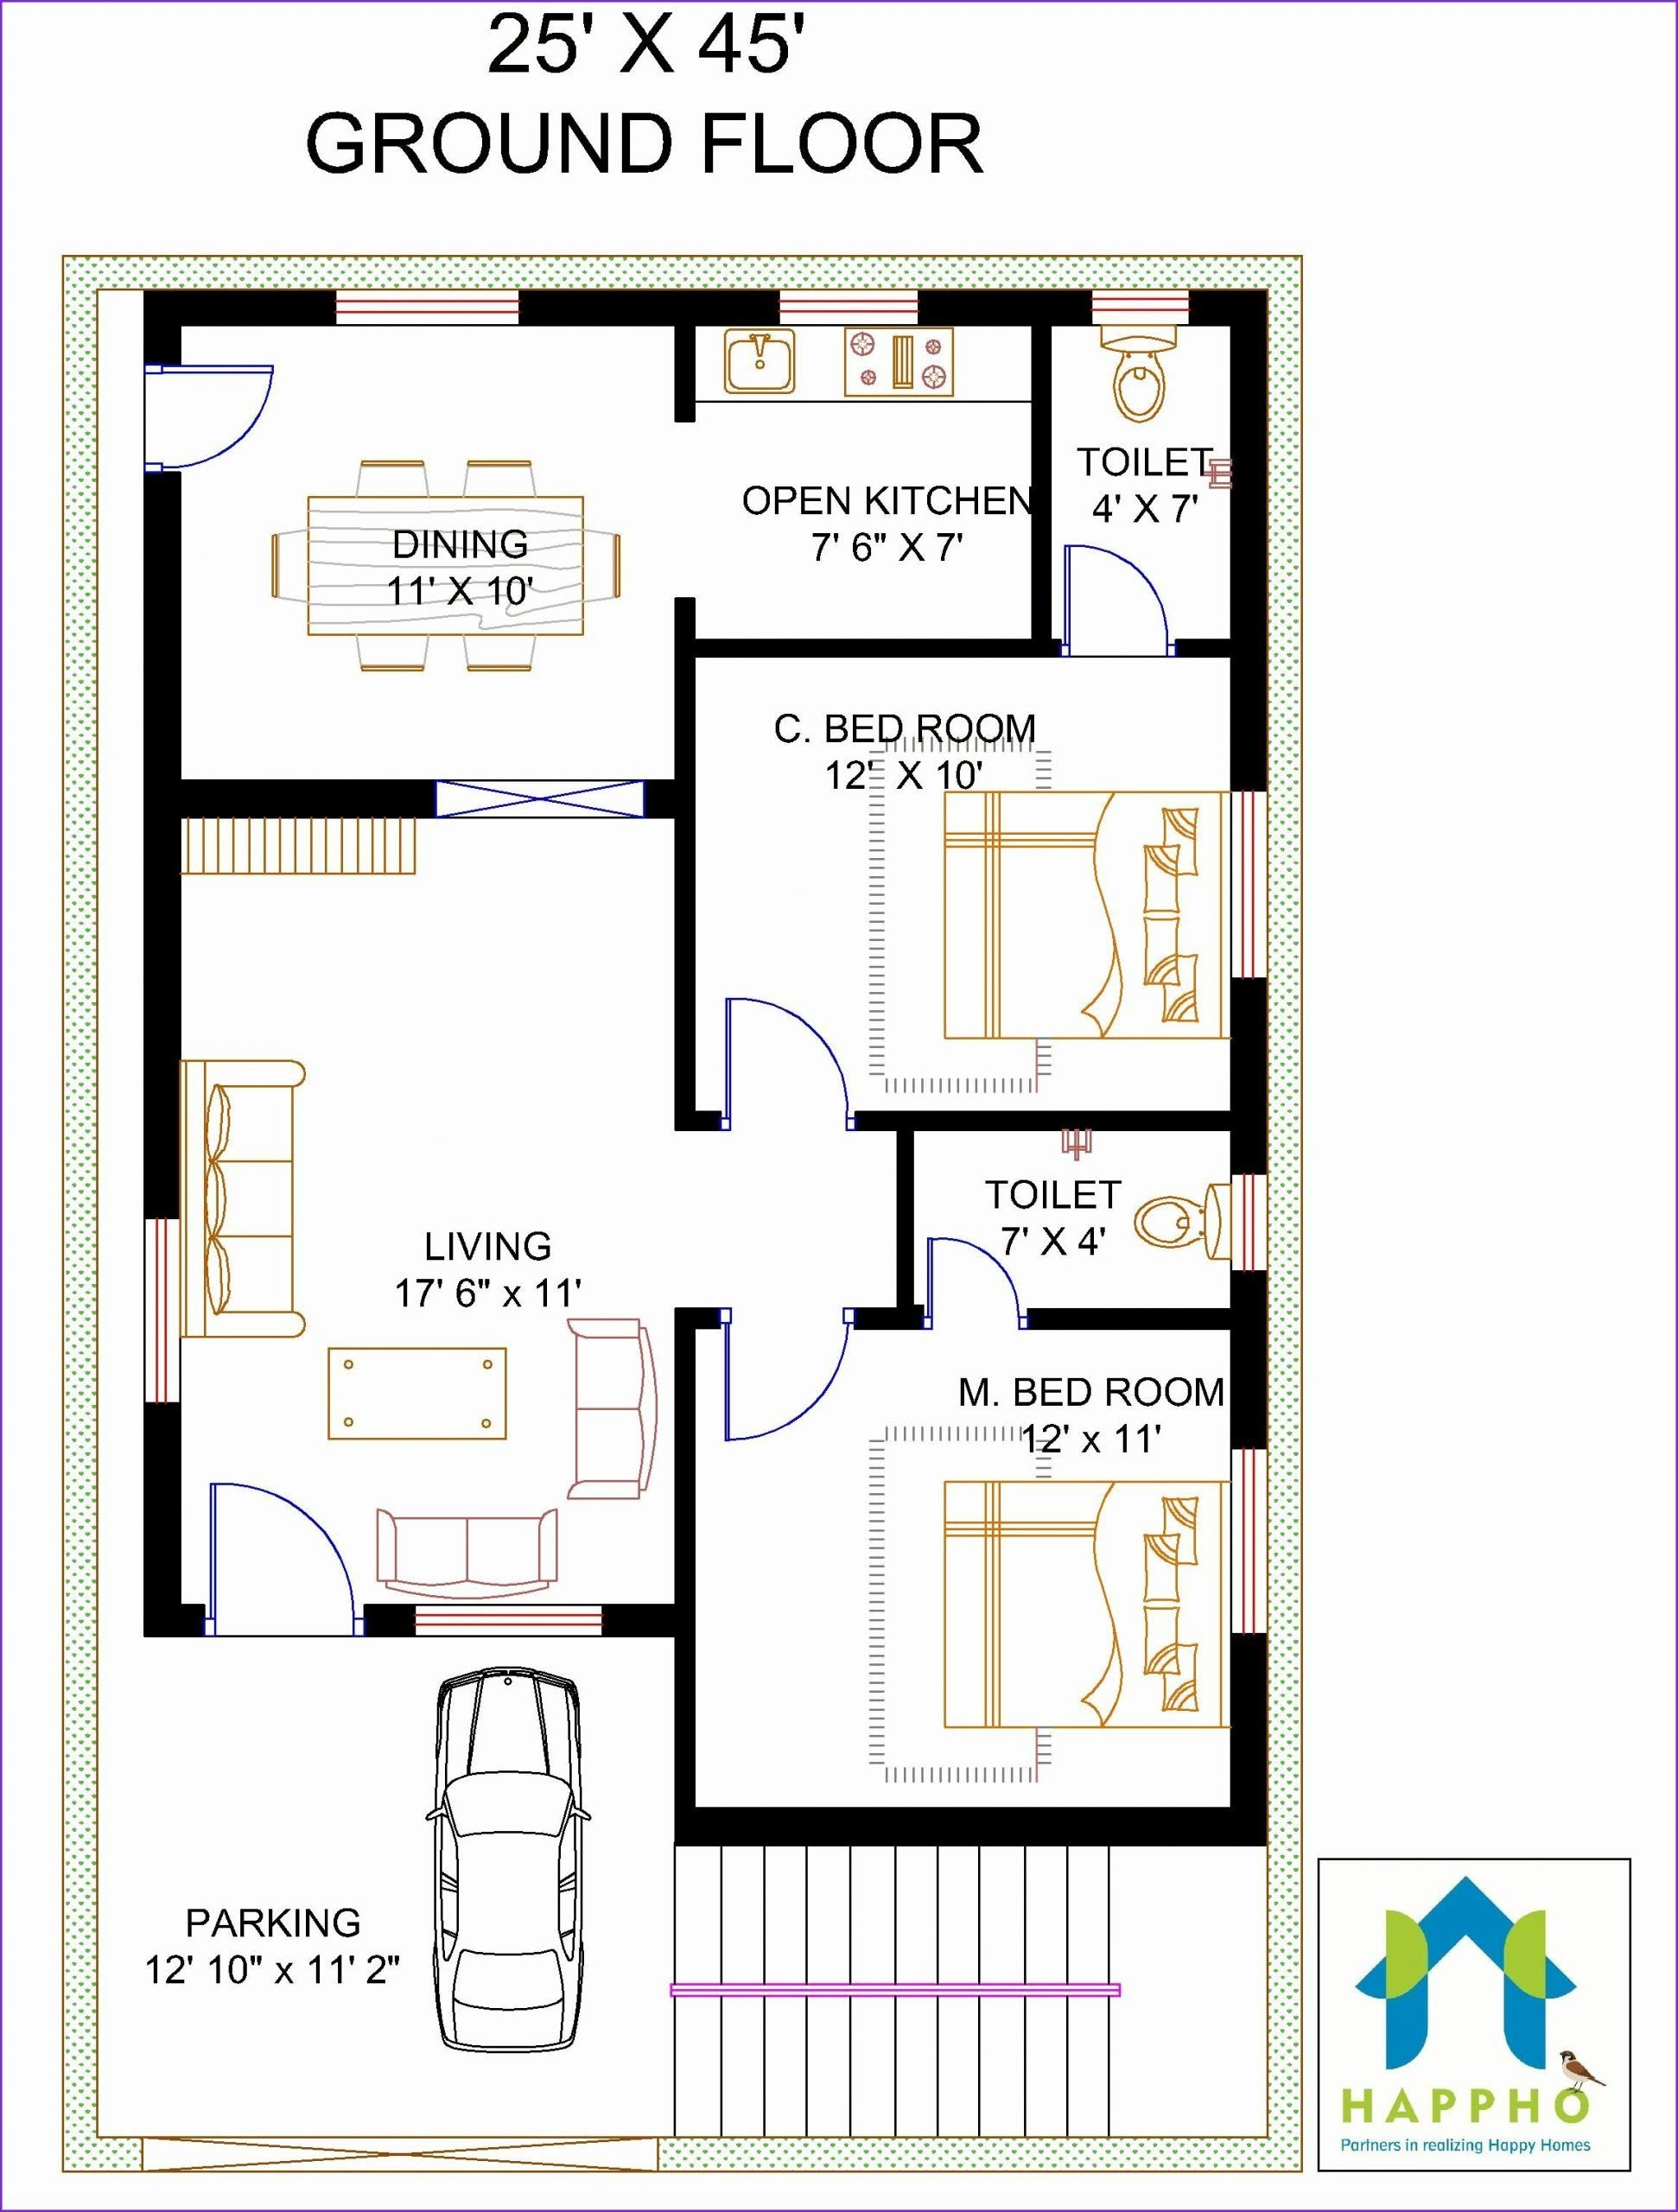 1600 Sq Ft House Plans Elegant Awesome 1600 Sq Ft Open Concept House Plans 1600 Sq Ft Open Open Concept House Plans Bedroom House Plans 20x40 House Plans